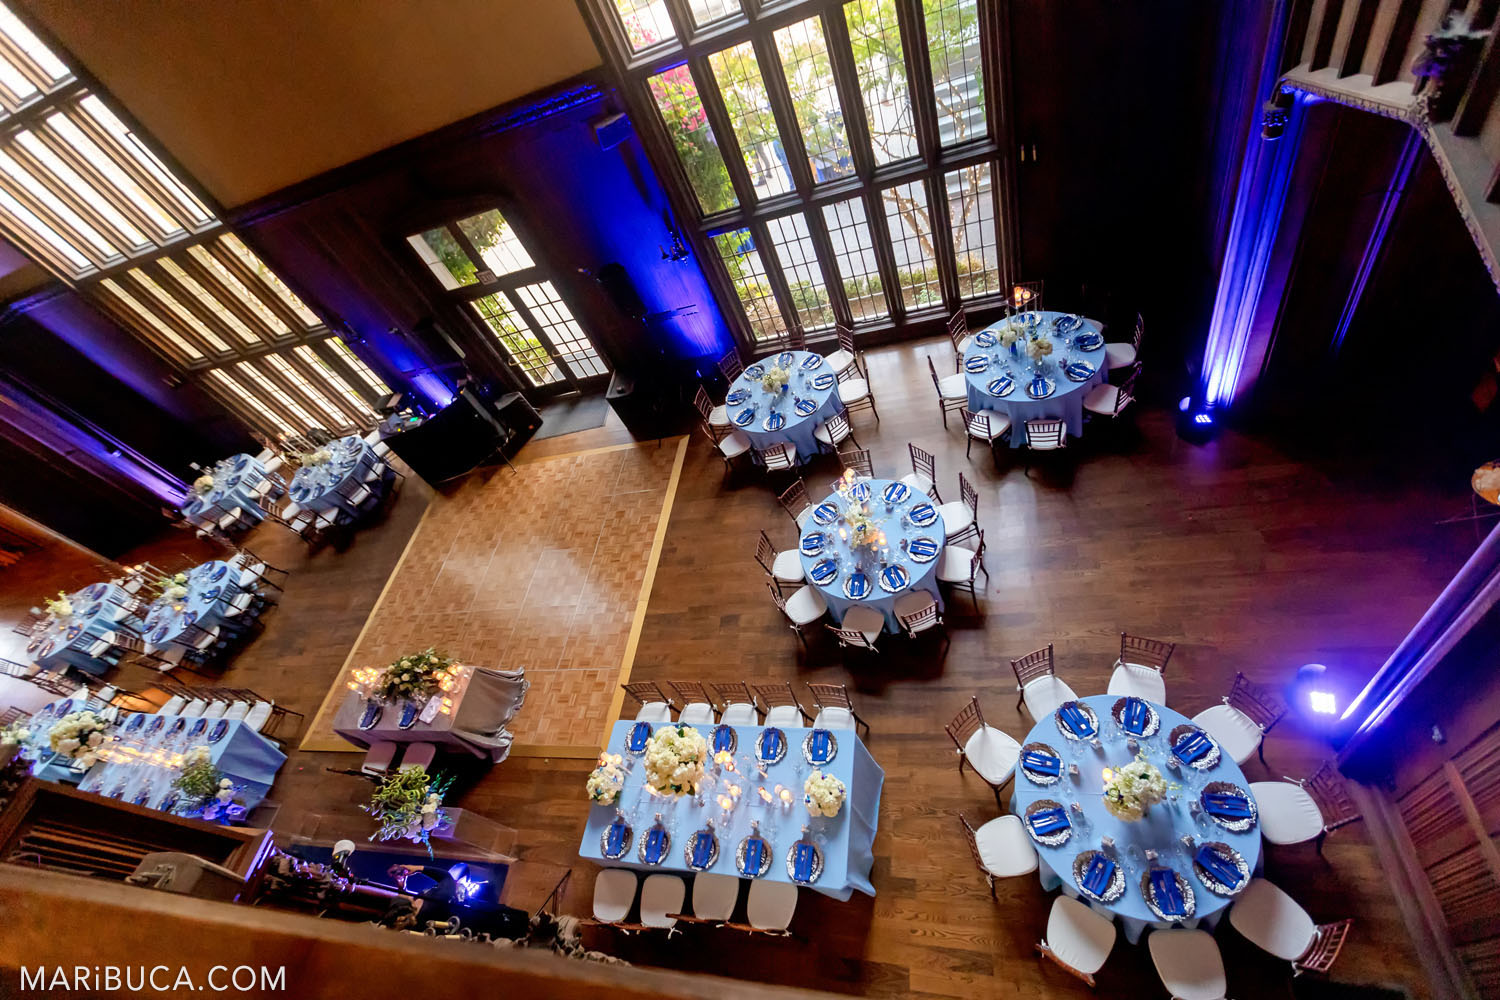 unforgettable view from the second floor to Great Hall, Kohl Mansion, Burlingame as the blue wedding theme for the wedding reception.